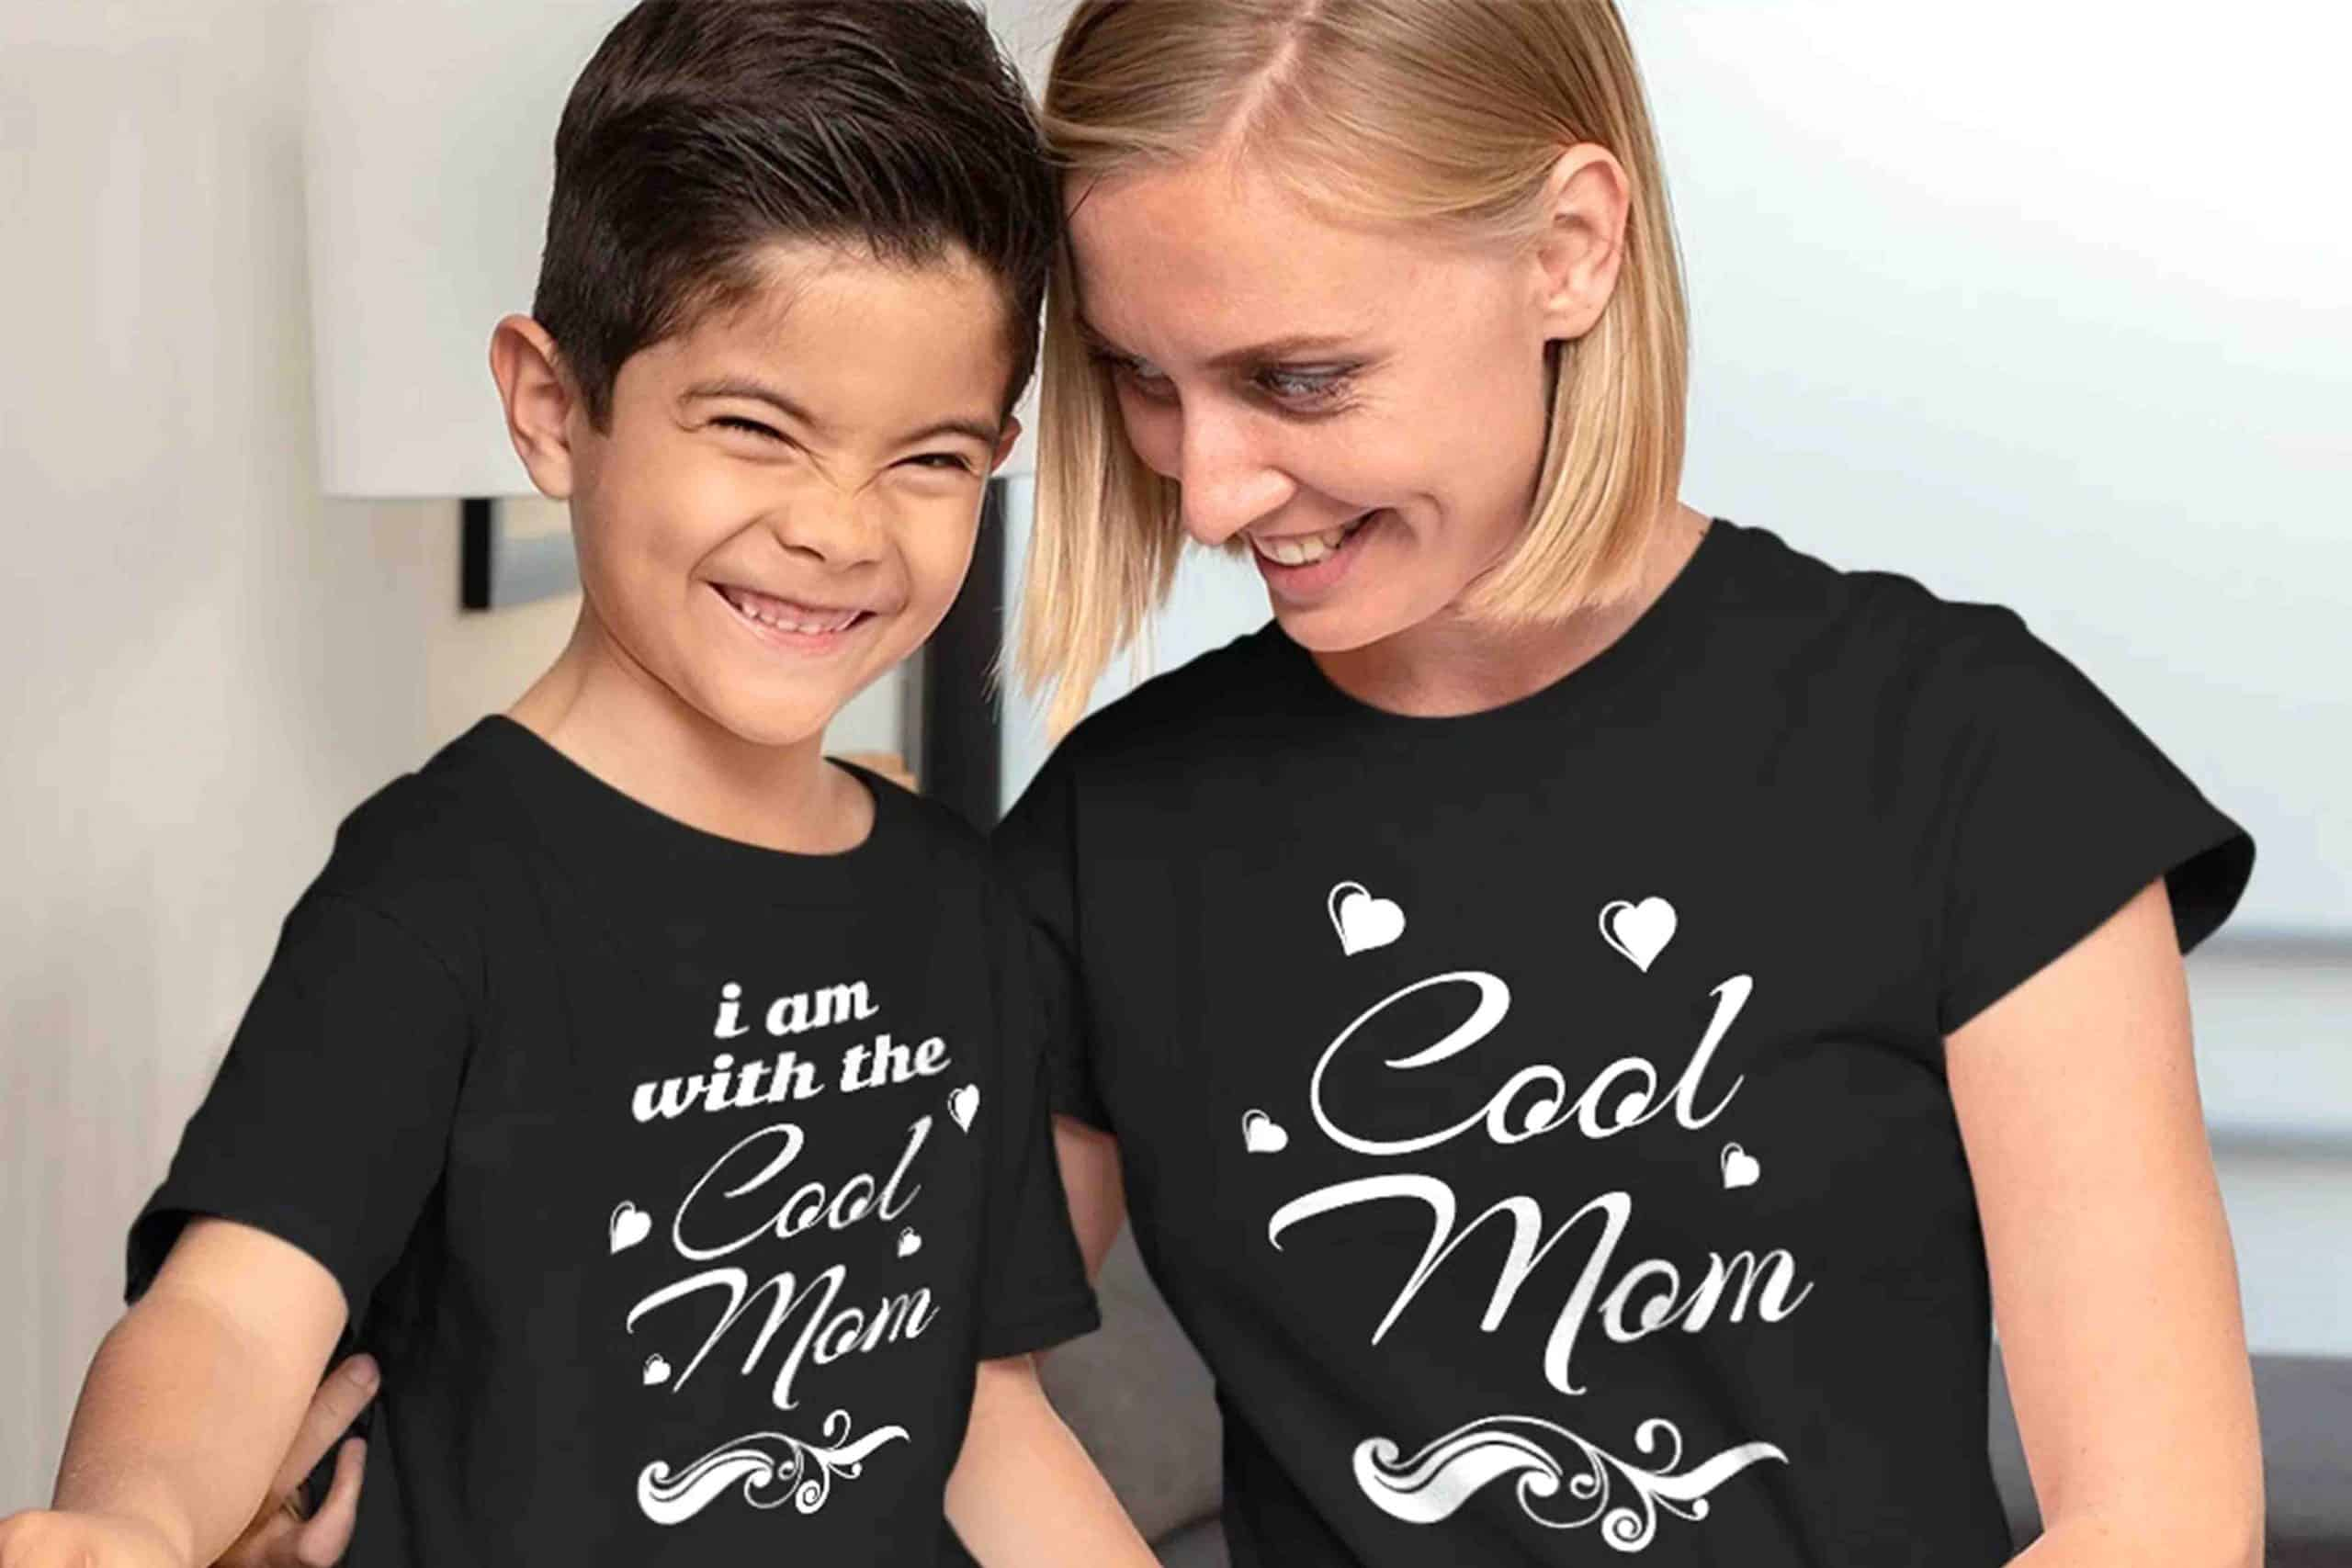 Unique & Adorable Fashion Trends to Sync in Dynamic Ways for the Family